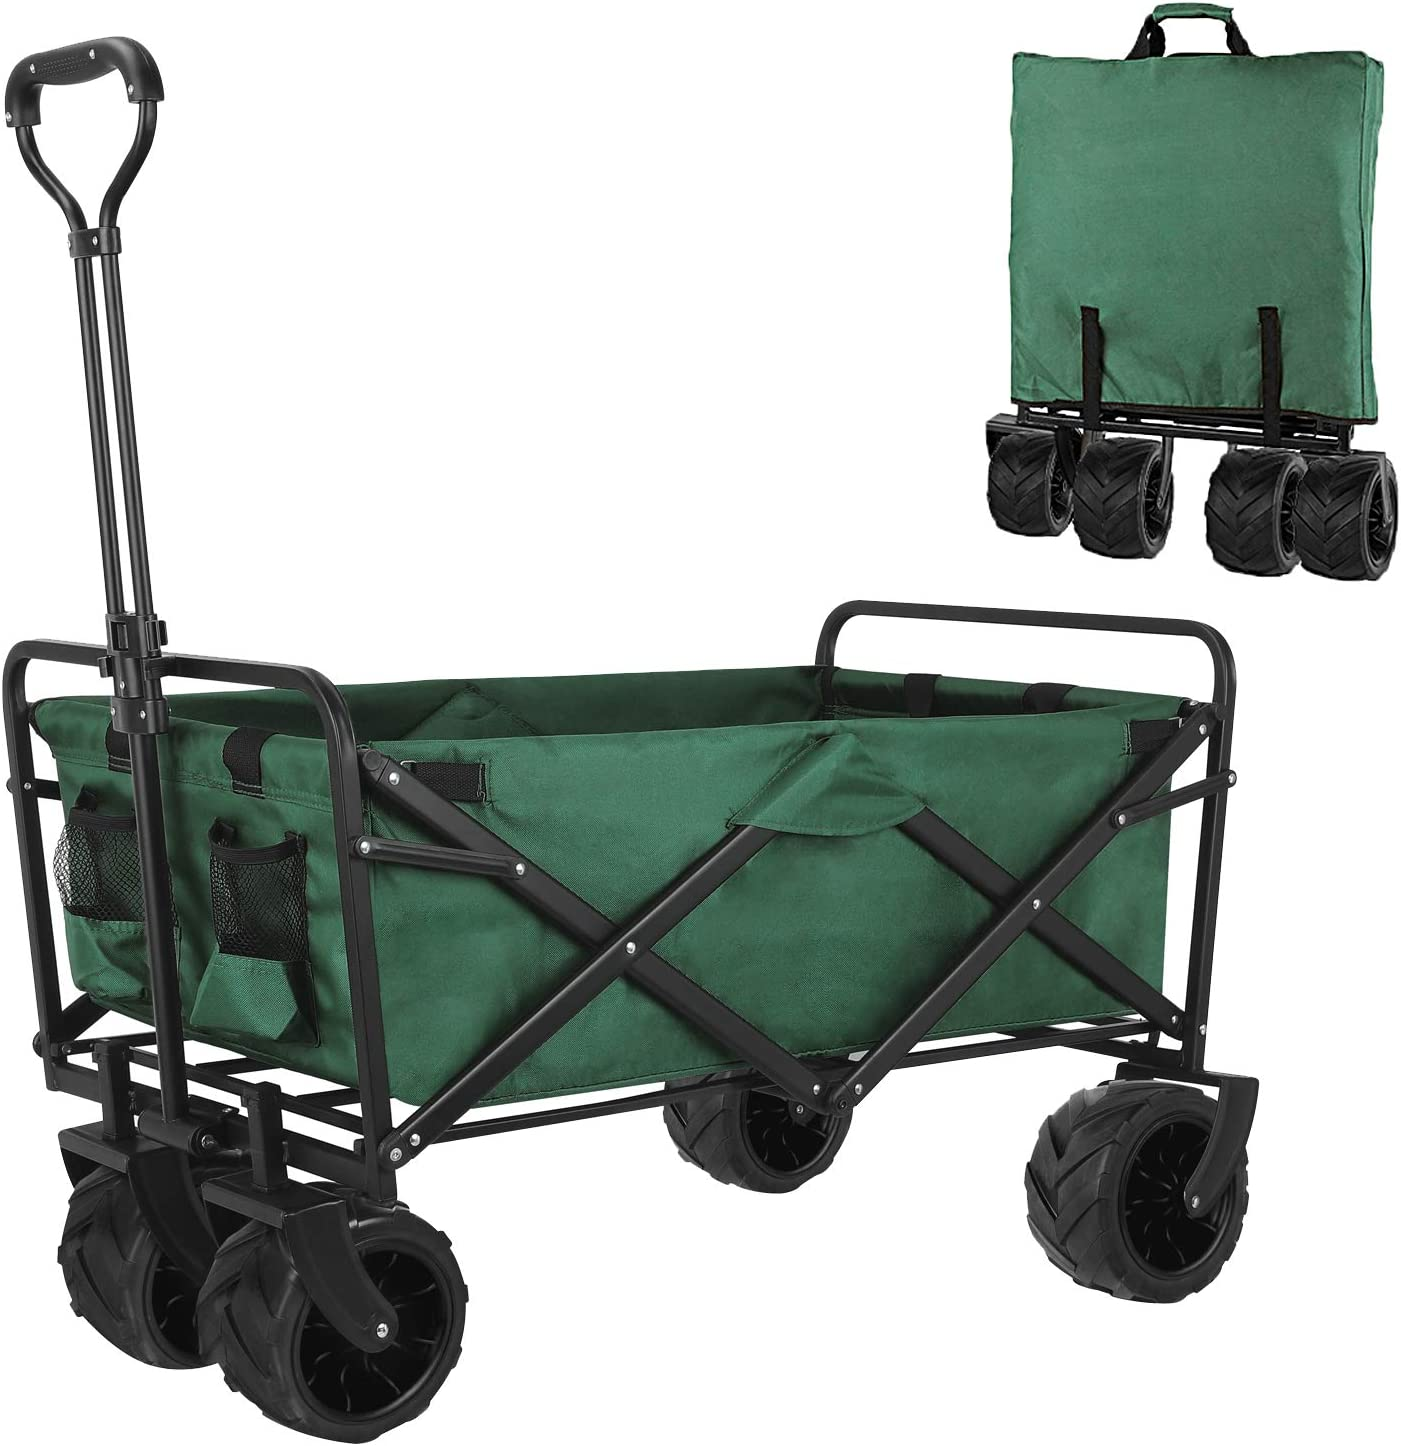 femor Folding Collapsible Outdoor Utility Wagon Cart, Heavy Duty Garden Cart with All-Terrain Wheels and Carrying Bag for Shopping, Beach, Yard (Green)